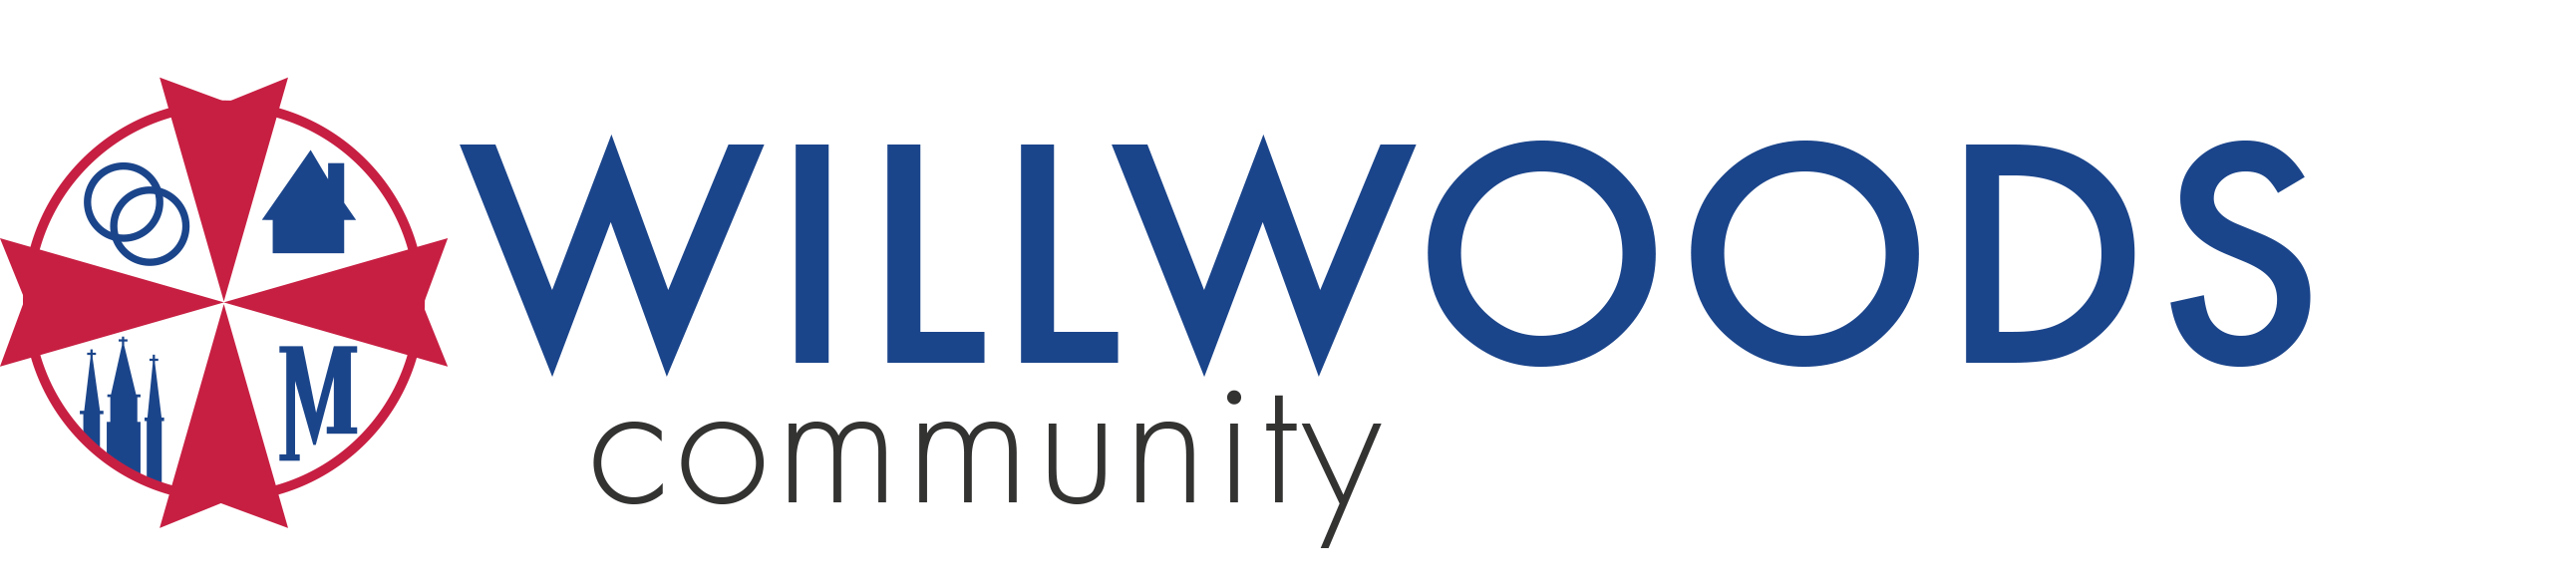 WilliWoods Community